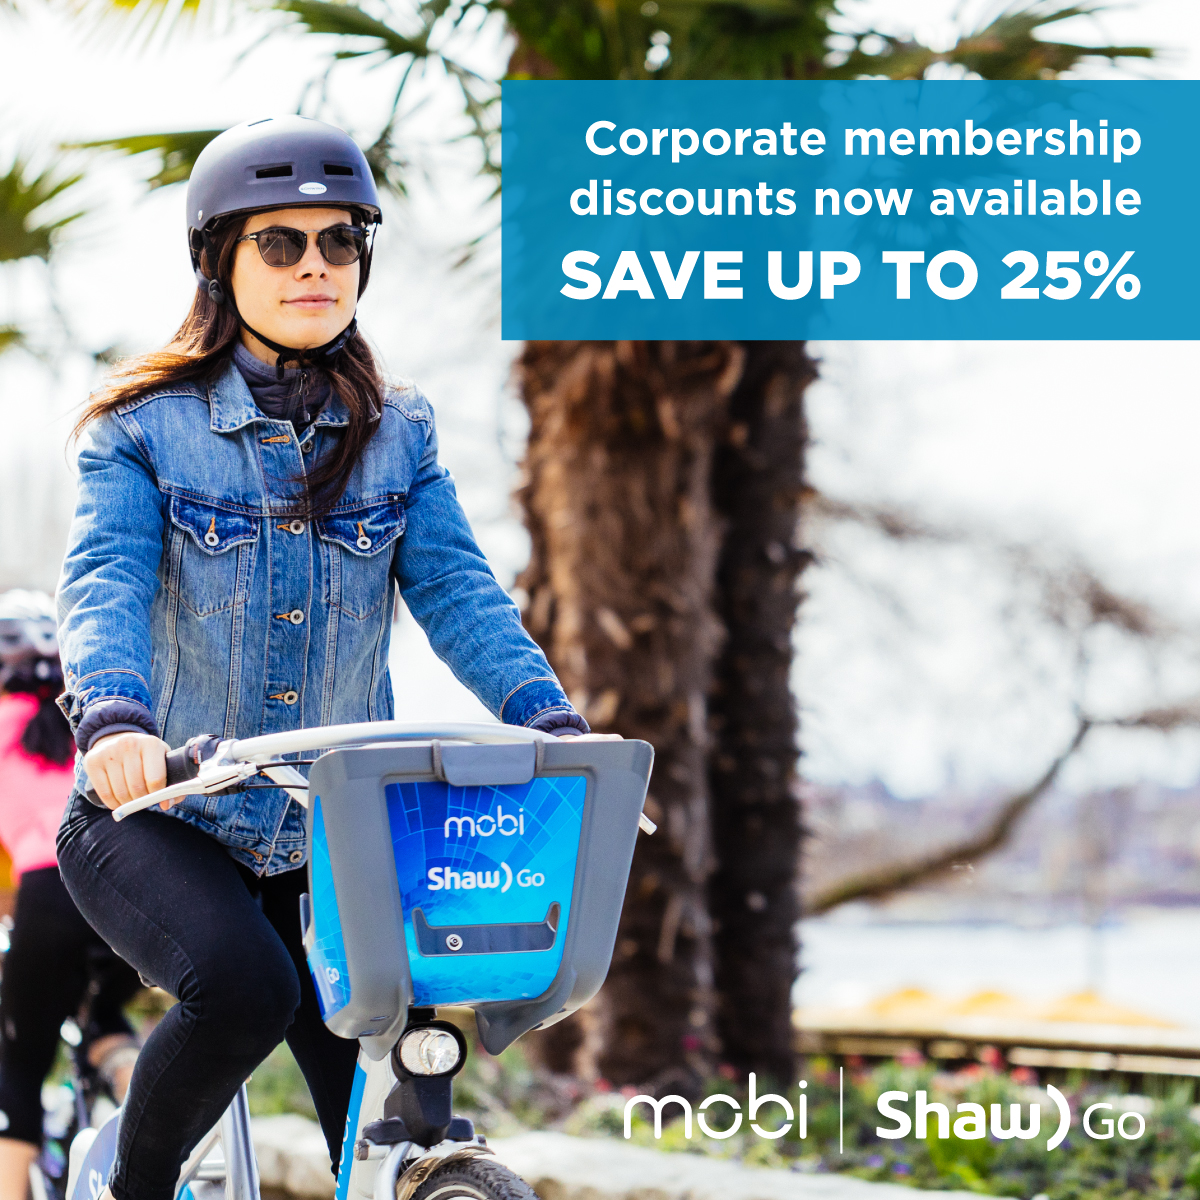 Discounted Memberships Are Now Available: Mobi by Shaw Go presents